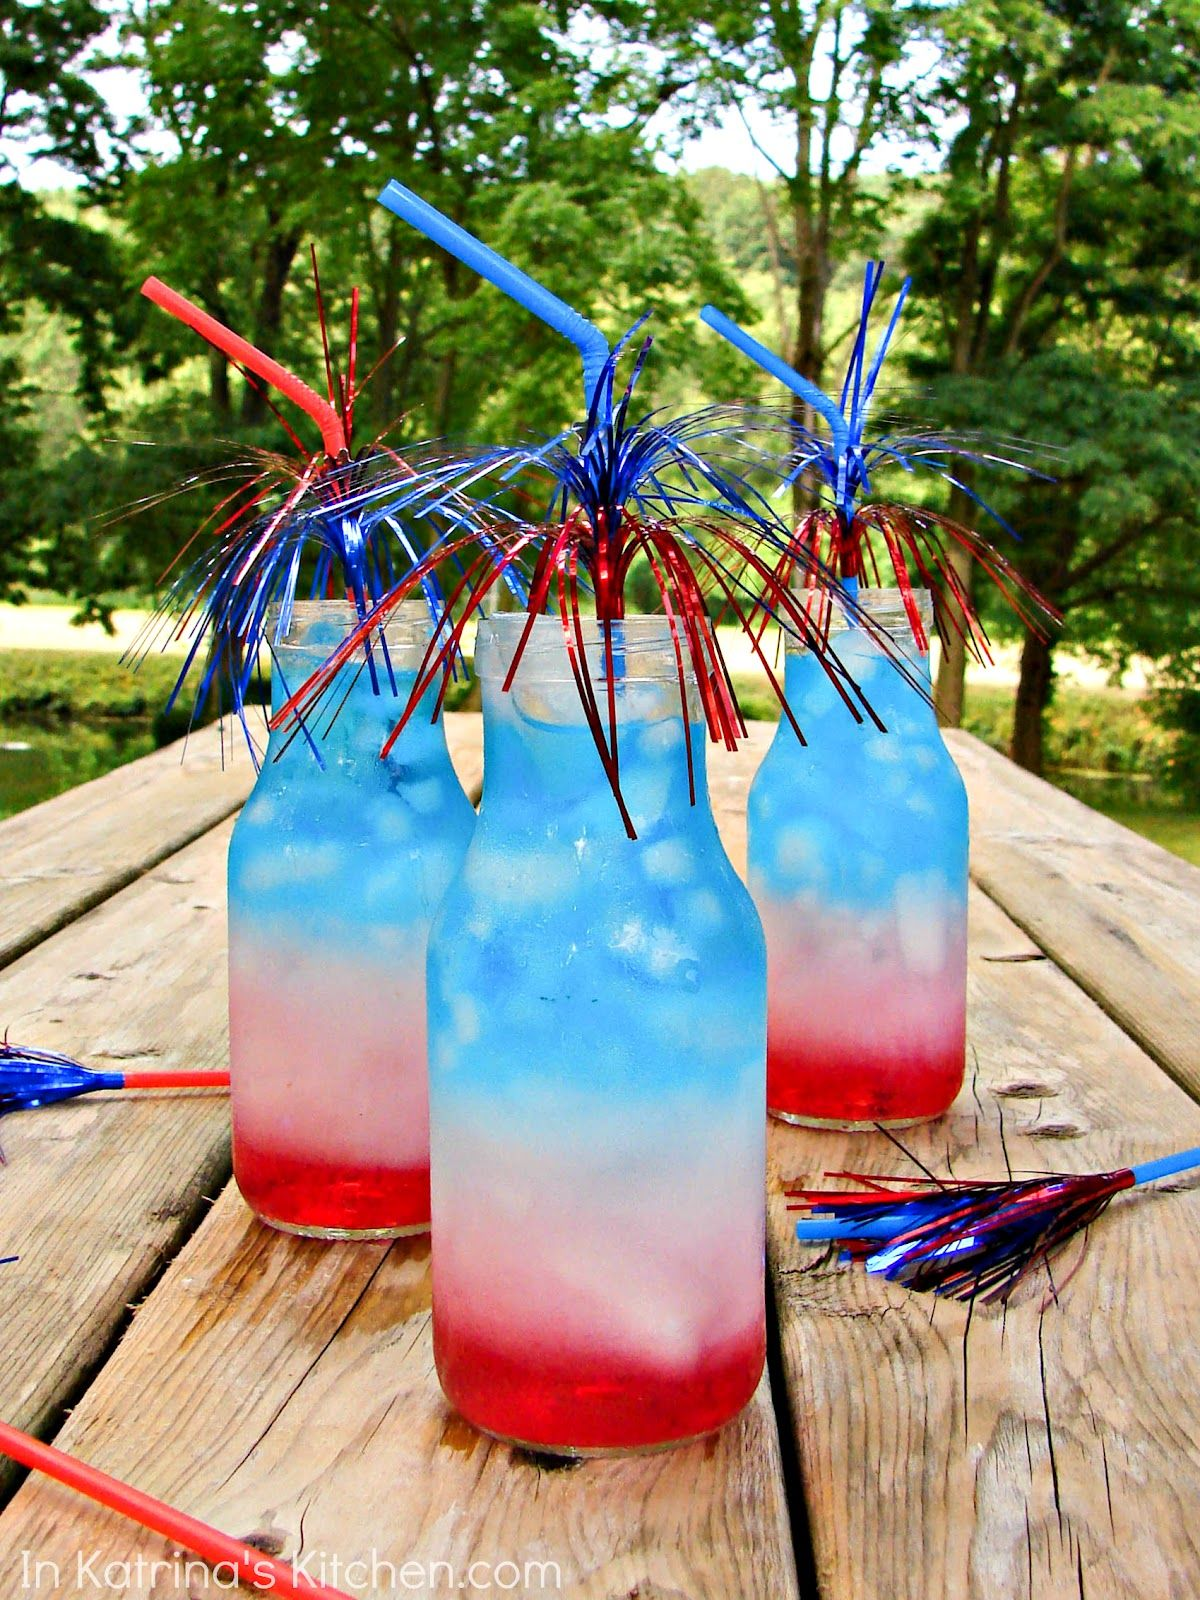 Layered Drinks - no alcohol  - fun for the kids.July 4th Layered Drinks   Printable Recipe Here     Ingredients:   •CranApple juice   •Sobe Pina Colada flavored drink   •G2 Gatorade   •Ice   Instructions:   1.Fill your glass 1/3 of the way full with CranApple juice.   2.Fill to the top with ice.   3.Slowly pour the remaining drinks directly on top of a piece of ice.